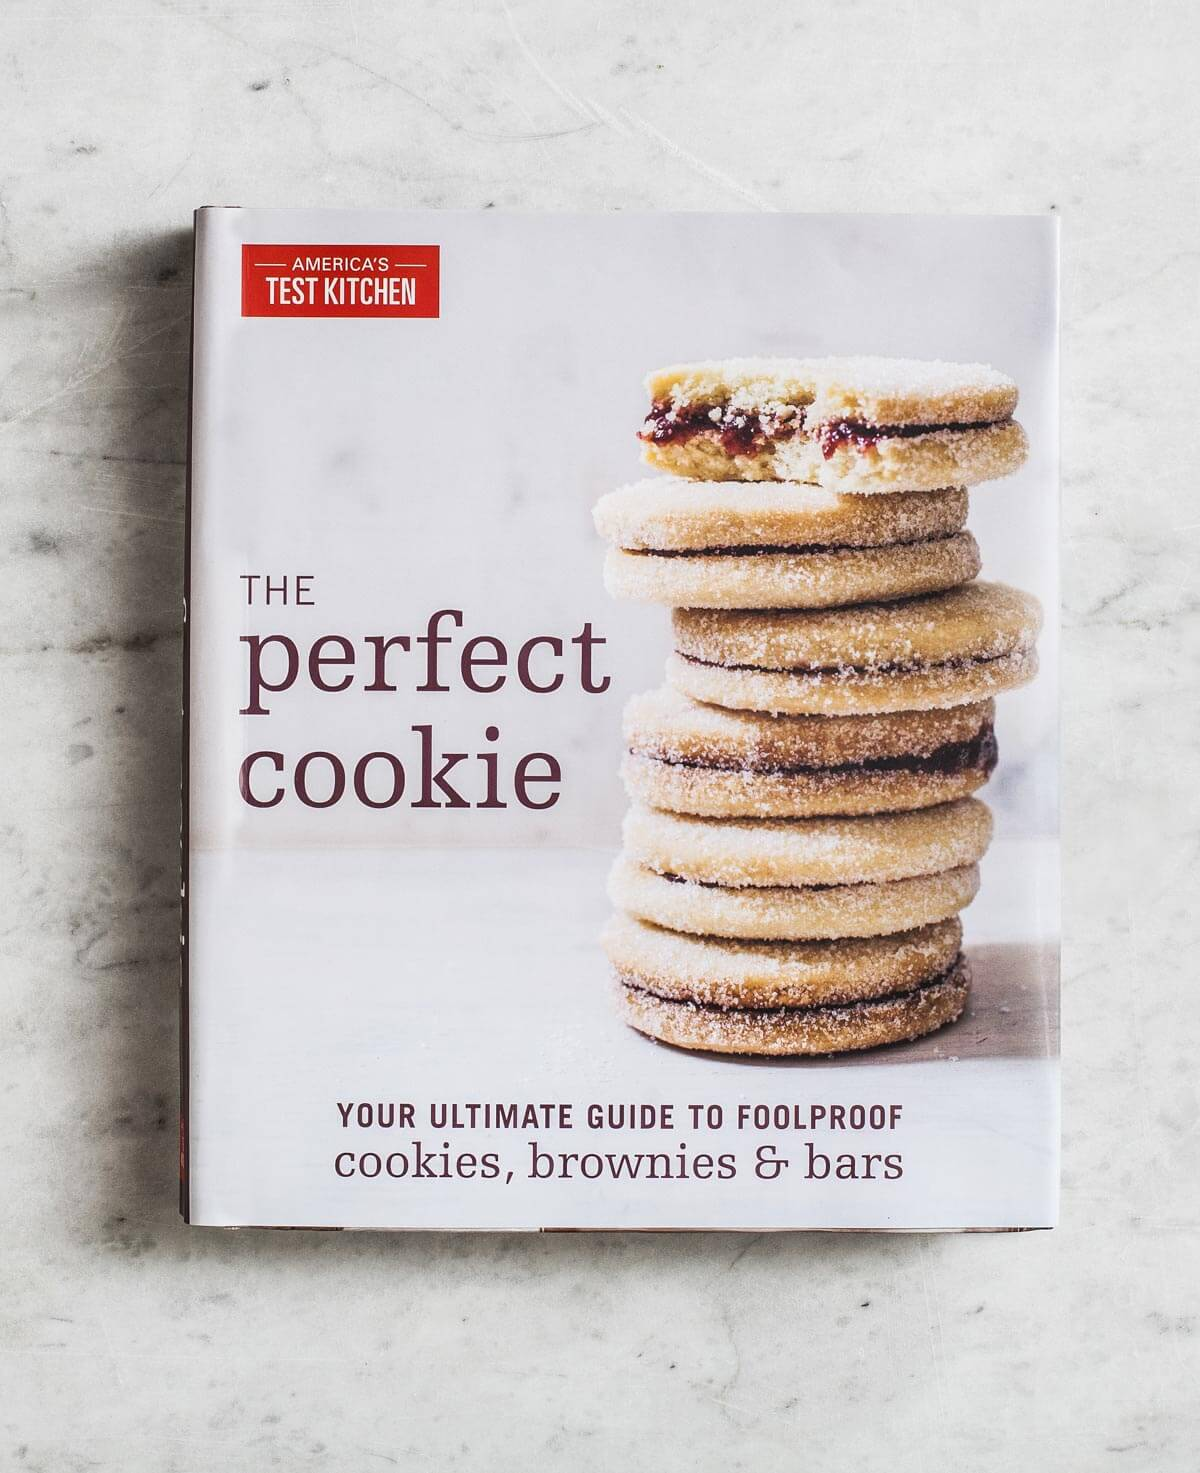 The Perfect Cookie Cookbook by America's Test Kitchen